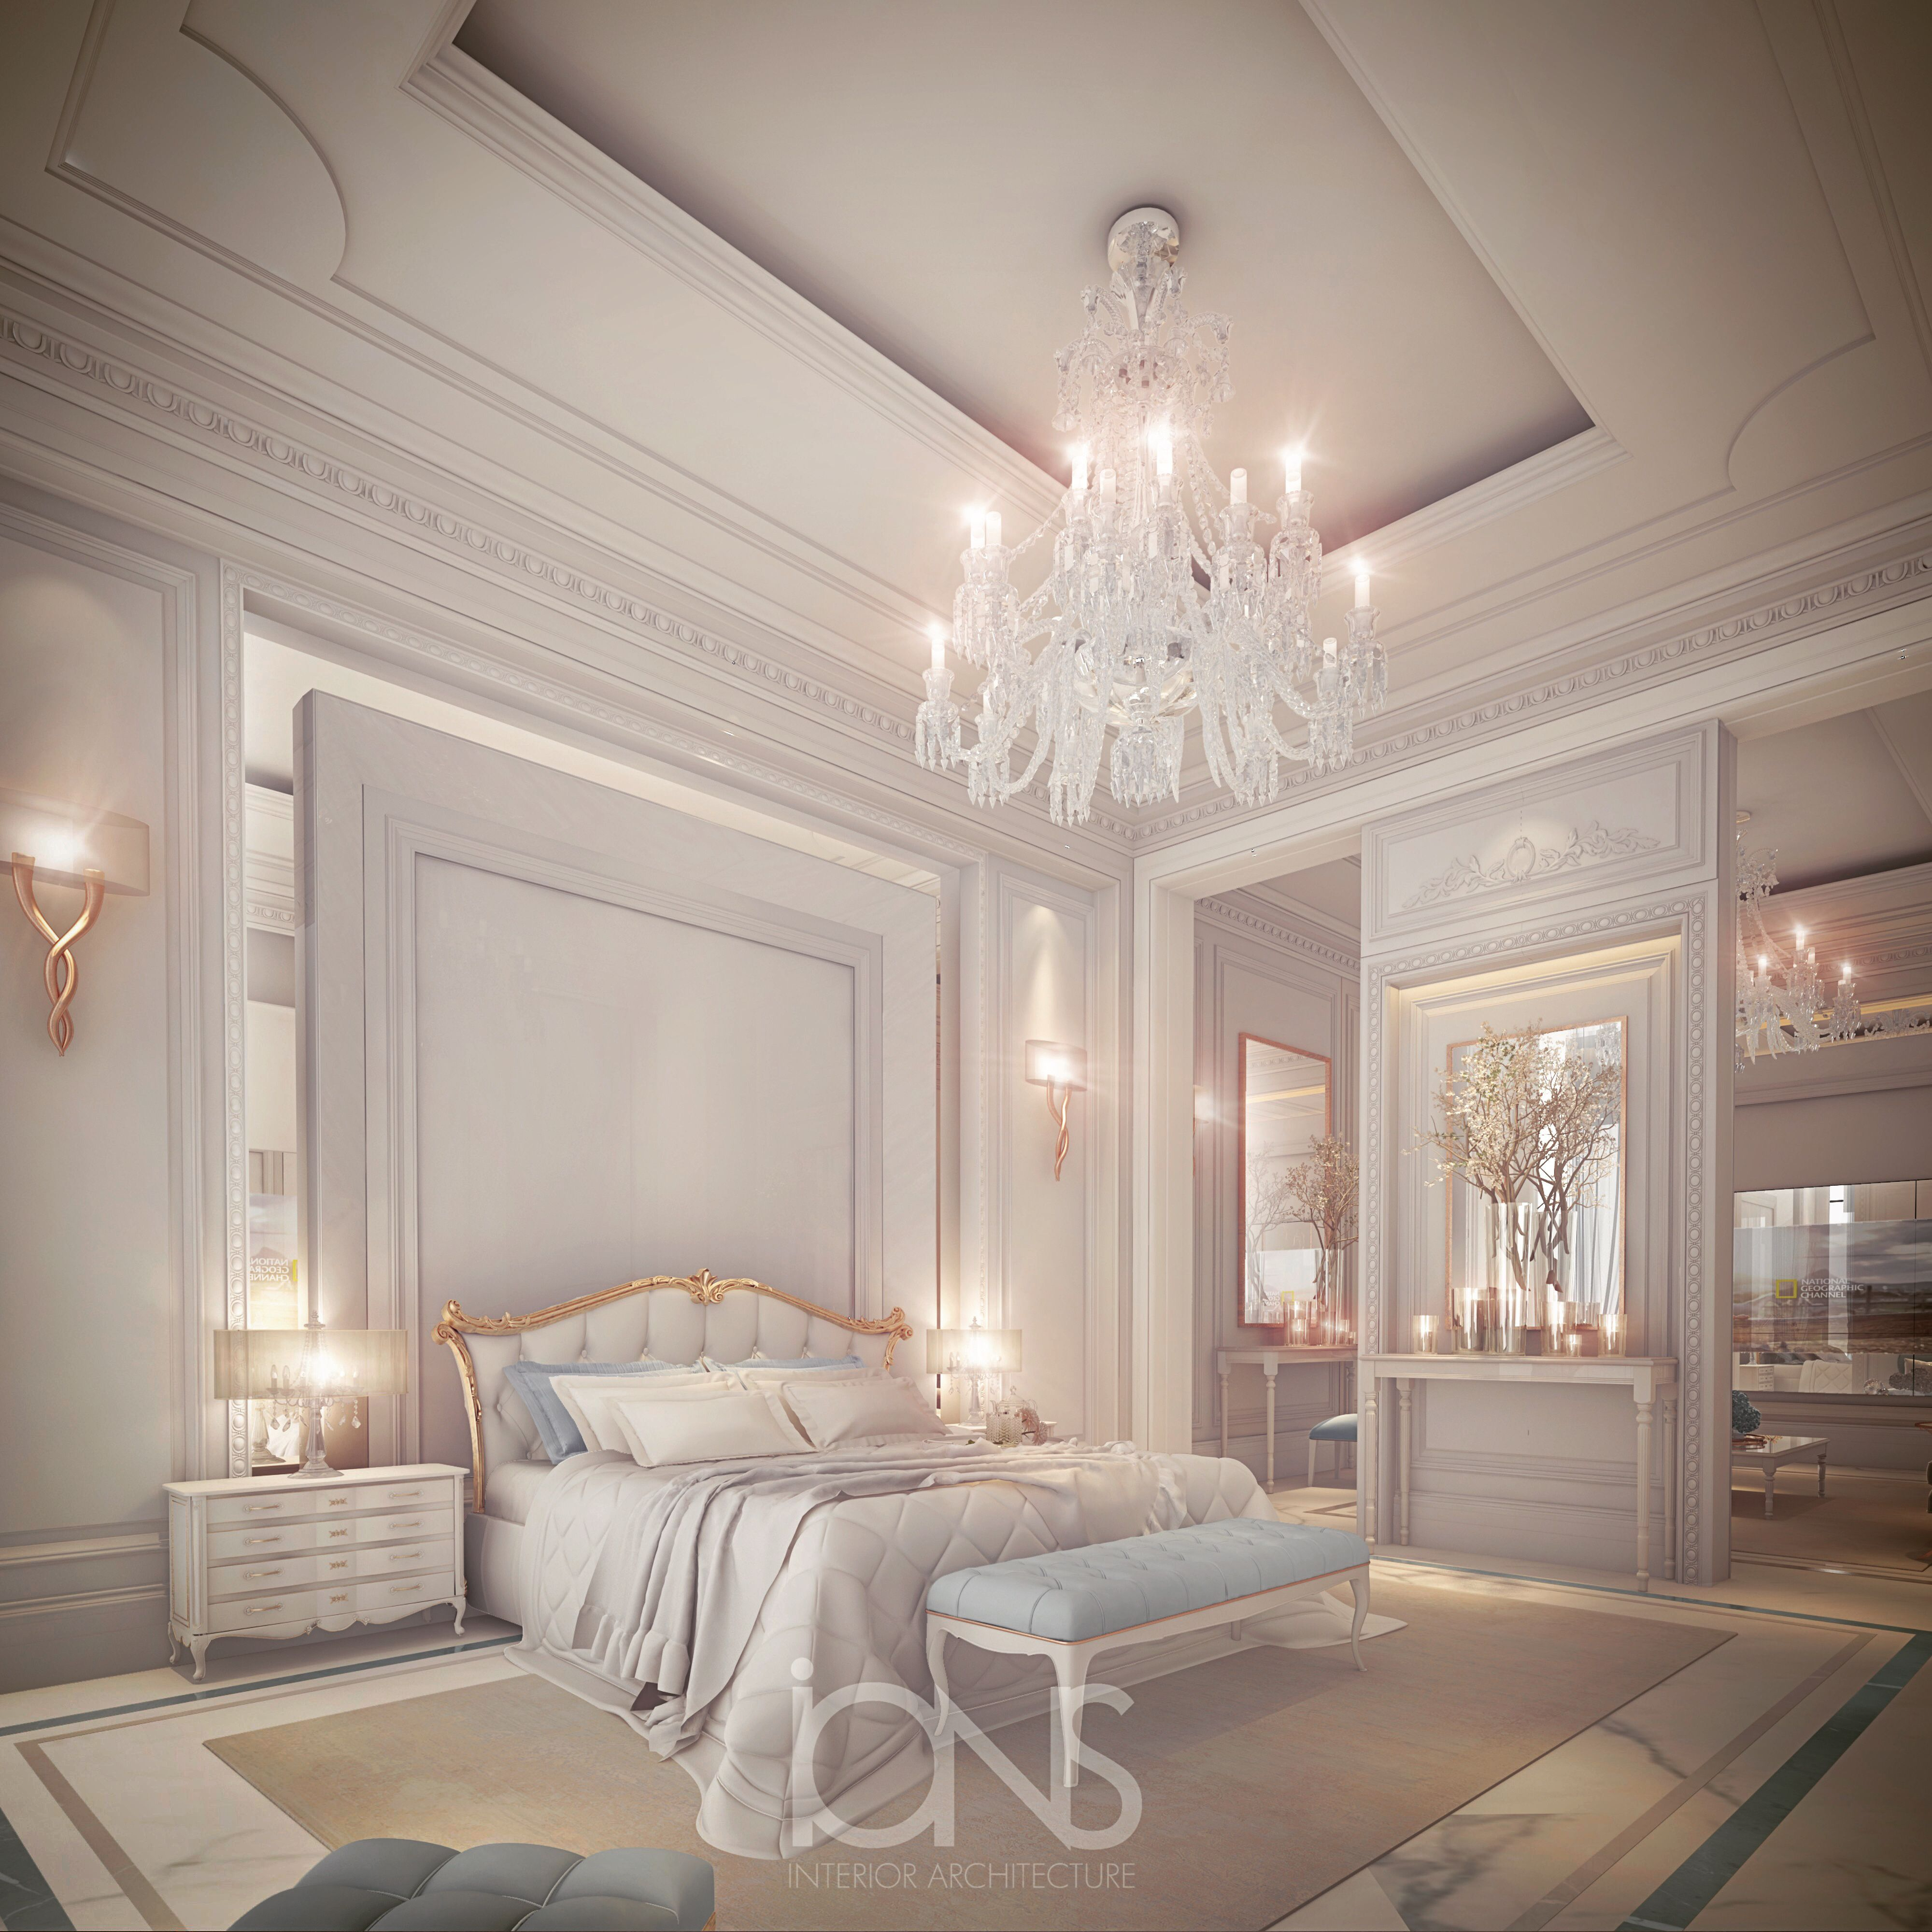 Master Bedroom Interior Design: Master Bedroom Design In Neo Classic Style Has Divine And